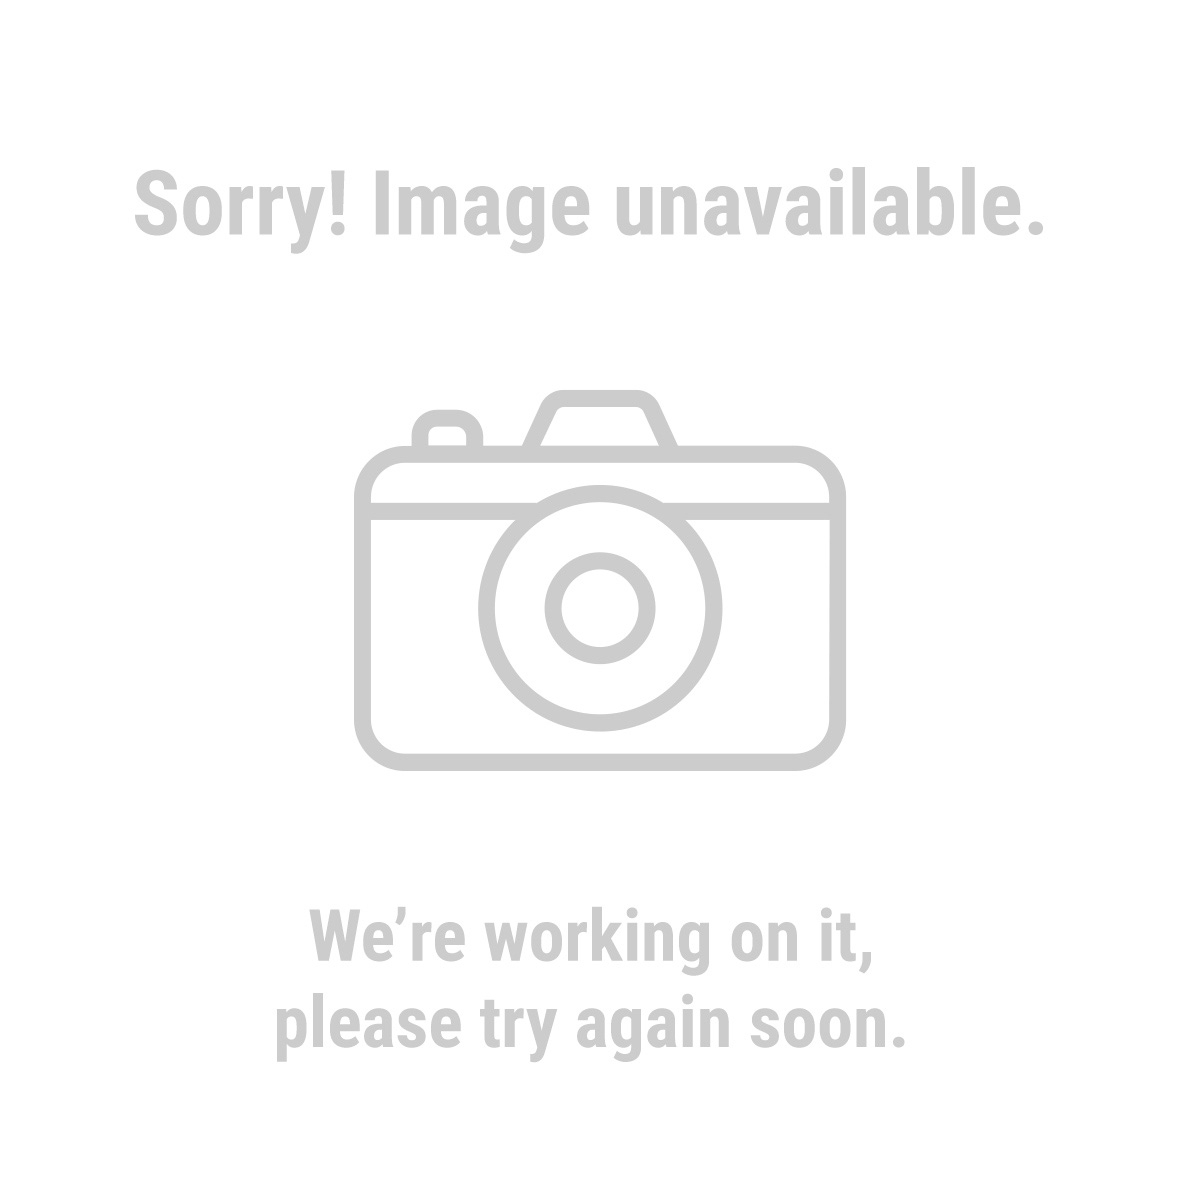 Chicago Electric Power Tools 62383 1/2 in. Heavy Duty Variable Speed Reversible Hammer Drill